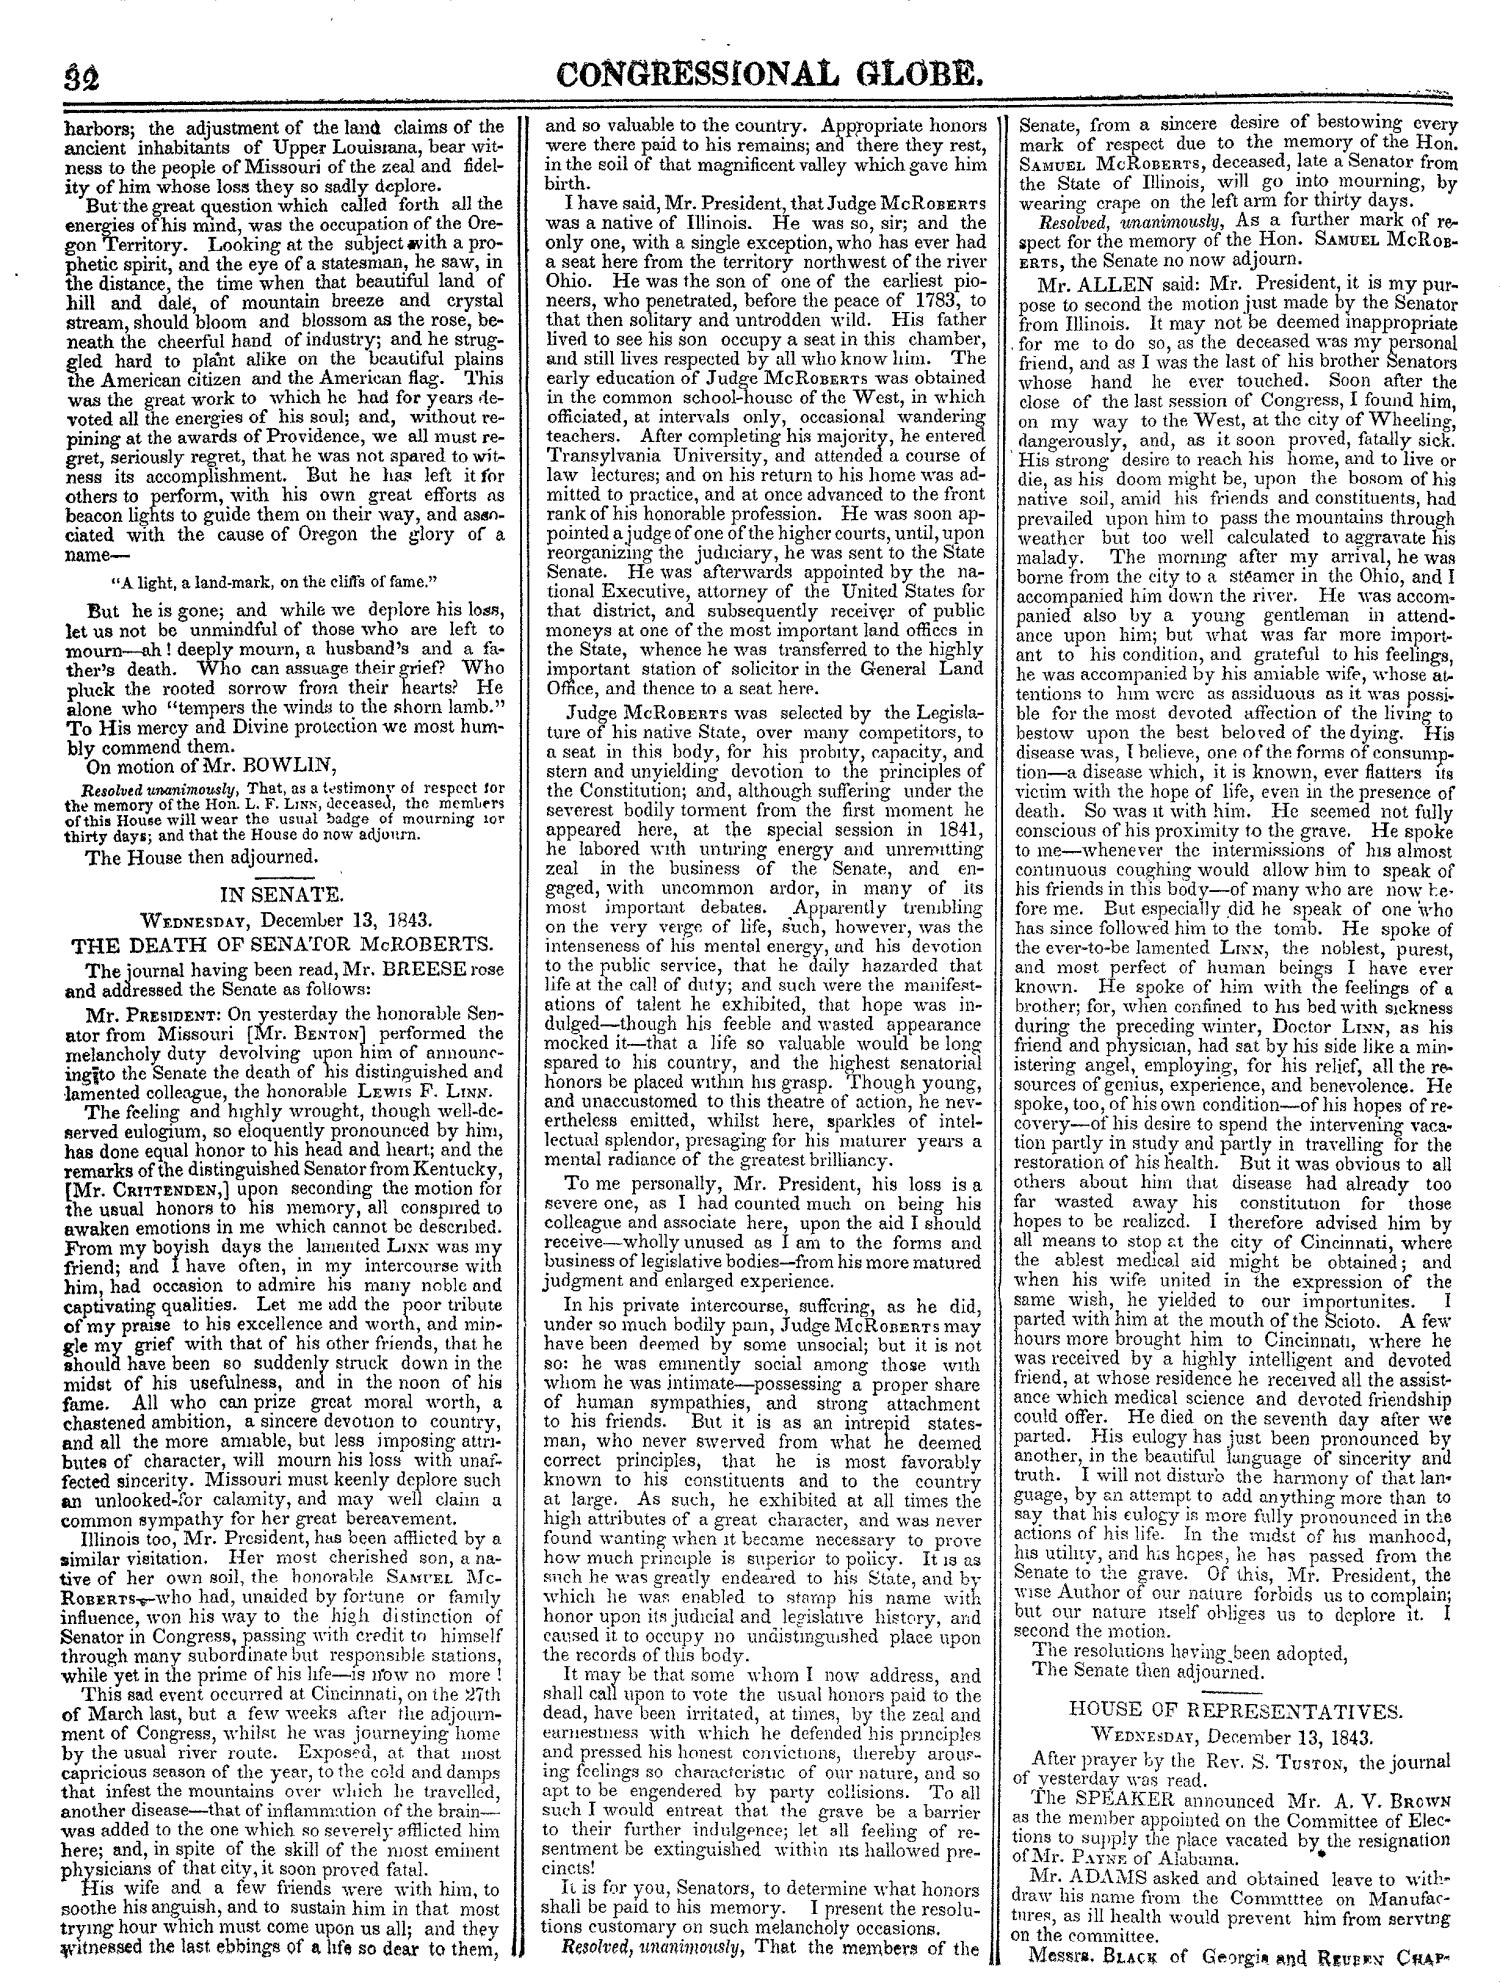 The Congressional Globe, Volume 13, Part 1: Twenty-Eighth Congress, First Session                                                                                                      32